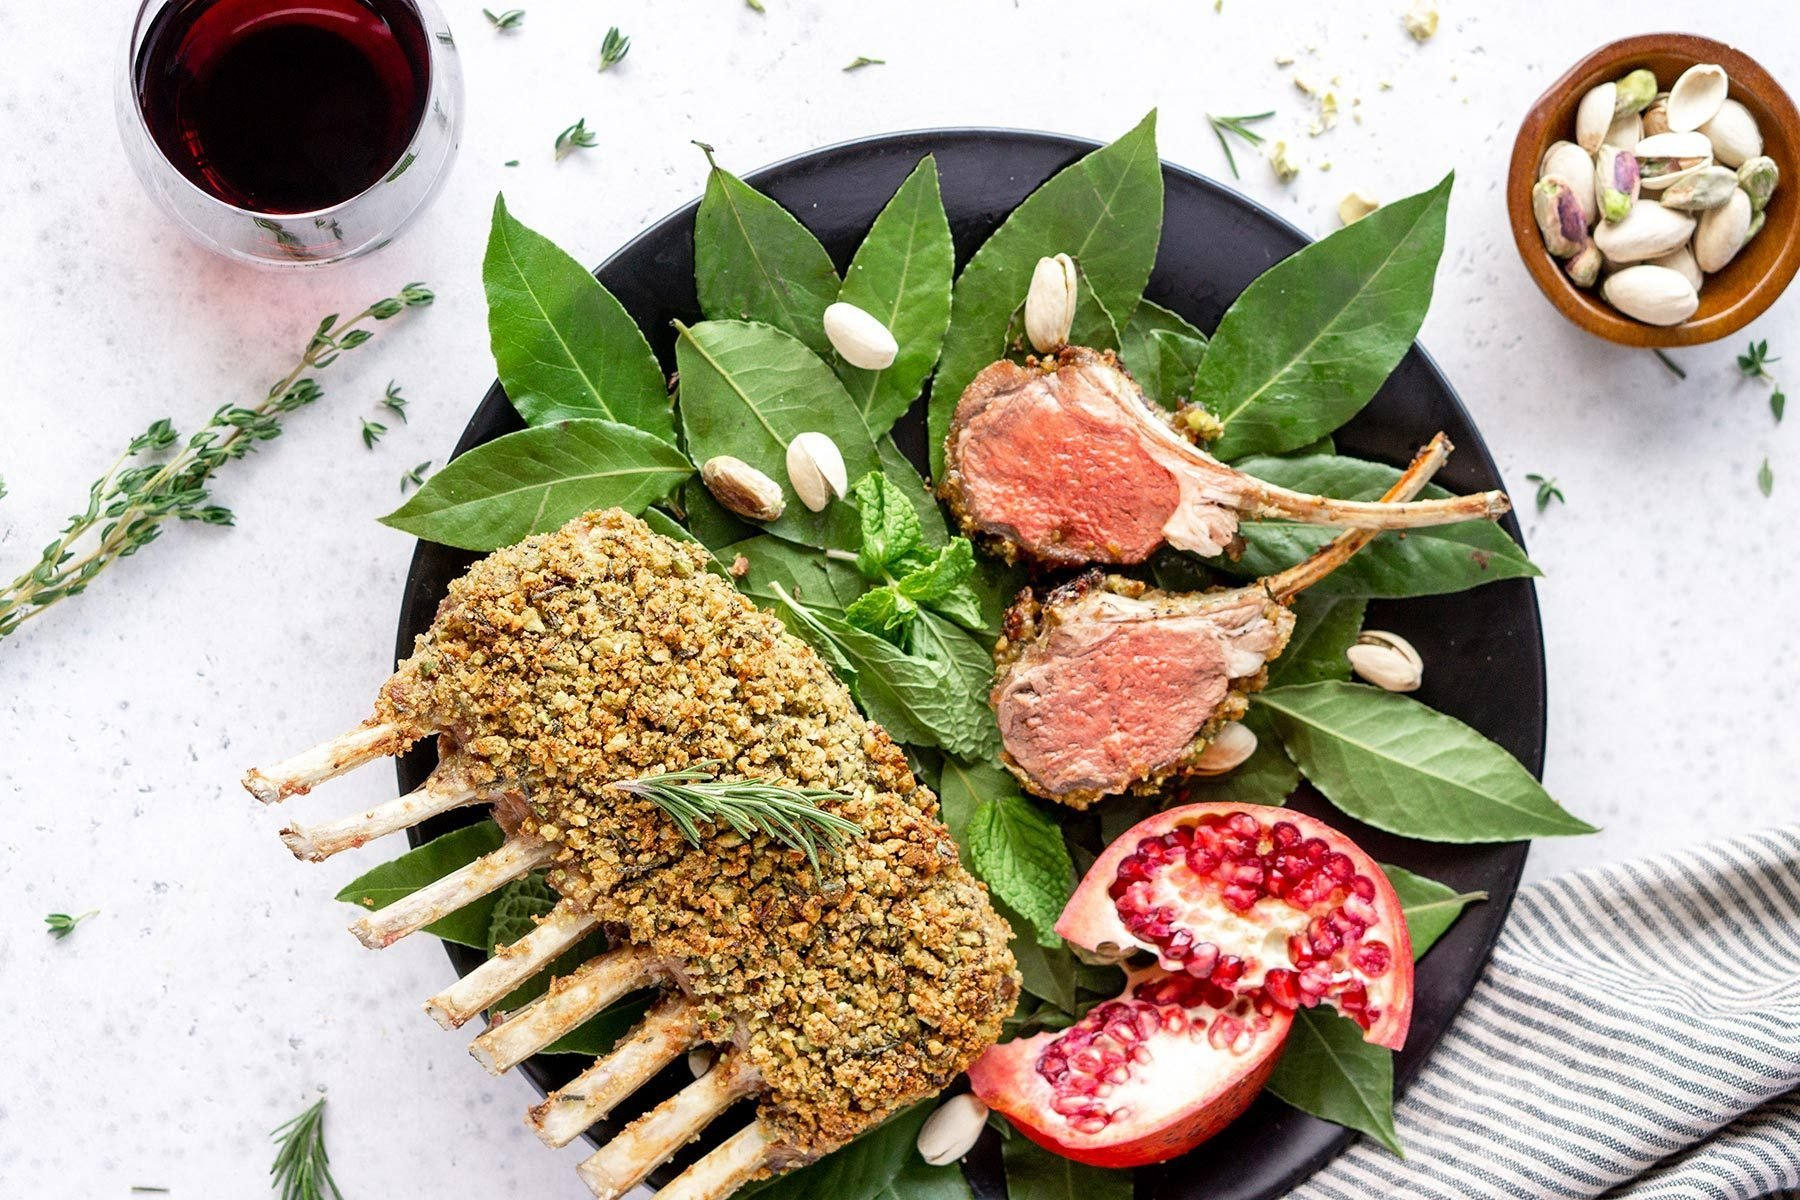 Pistachio-and-Parmesan-Crusted Rack of Lamb